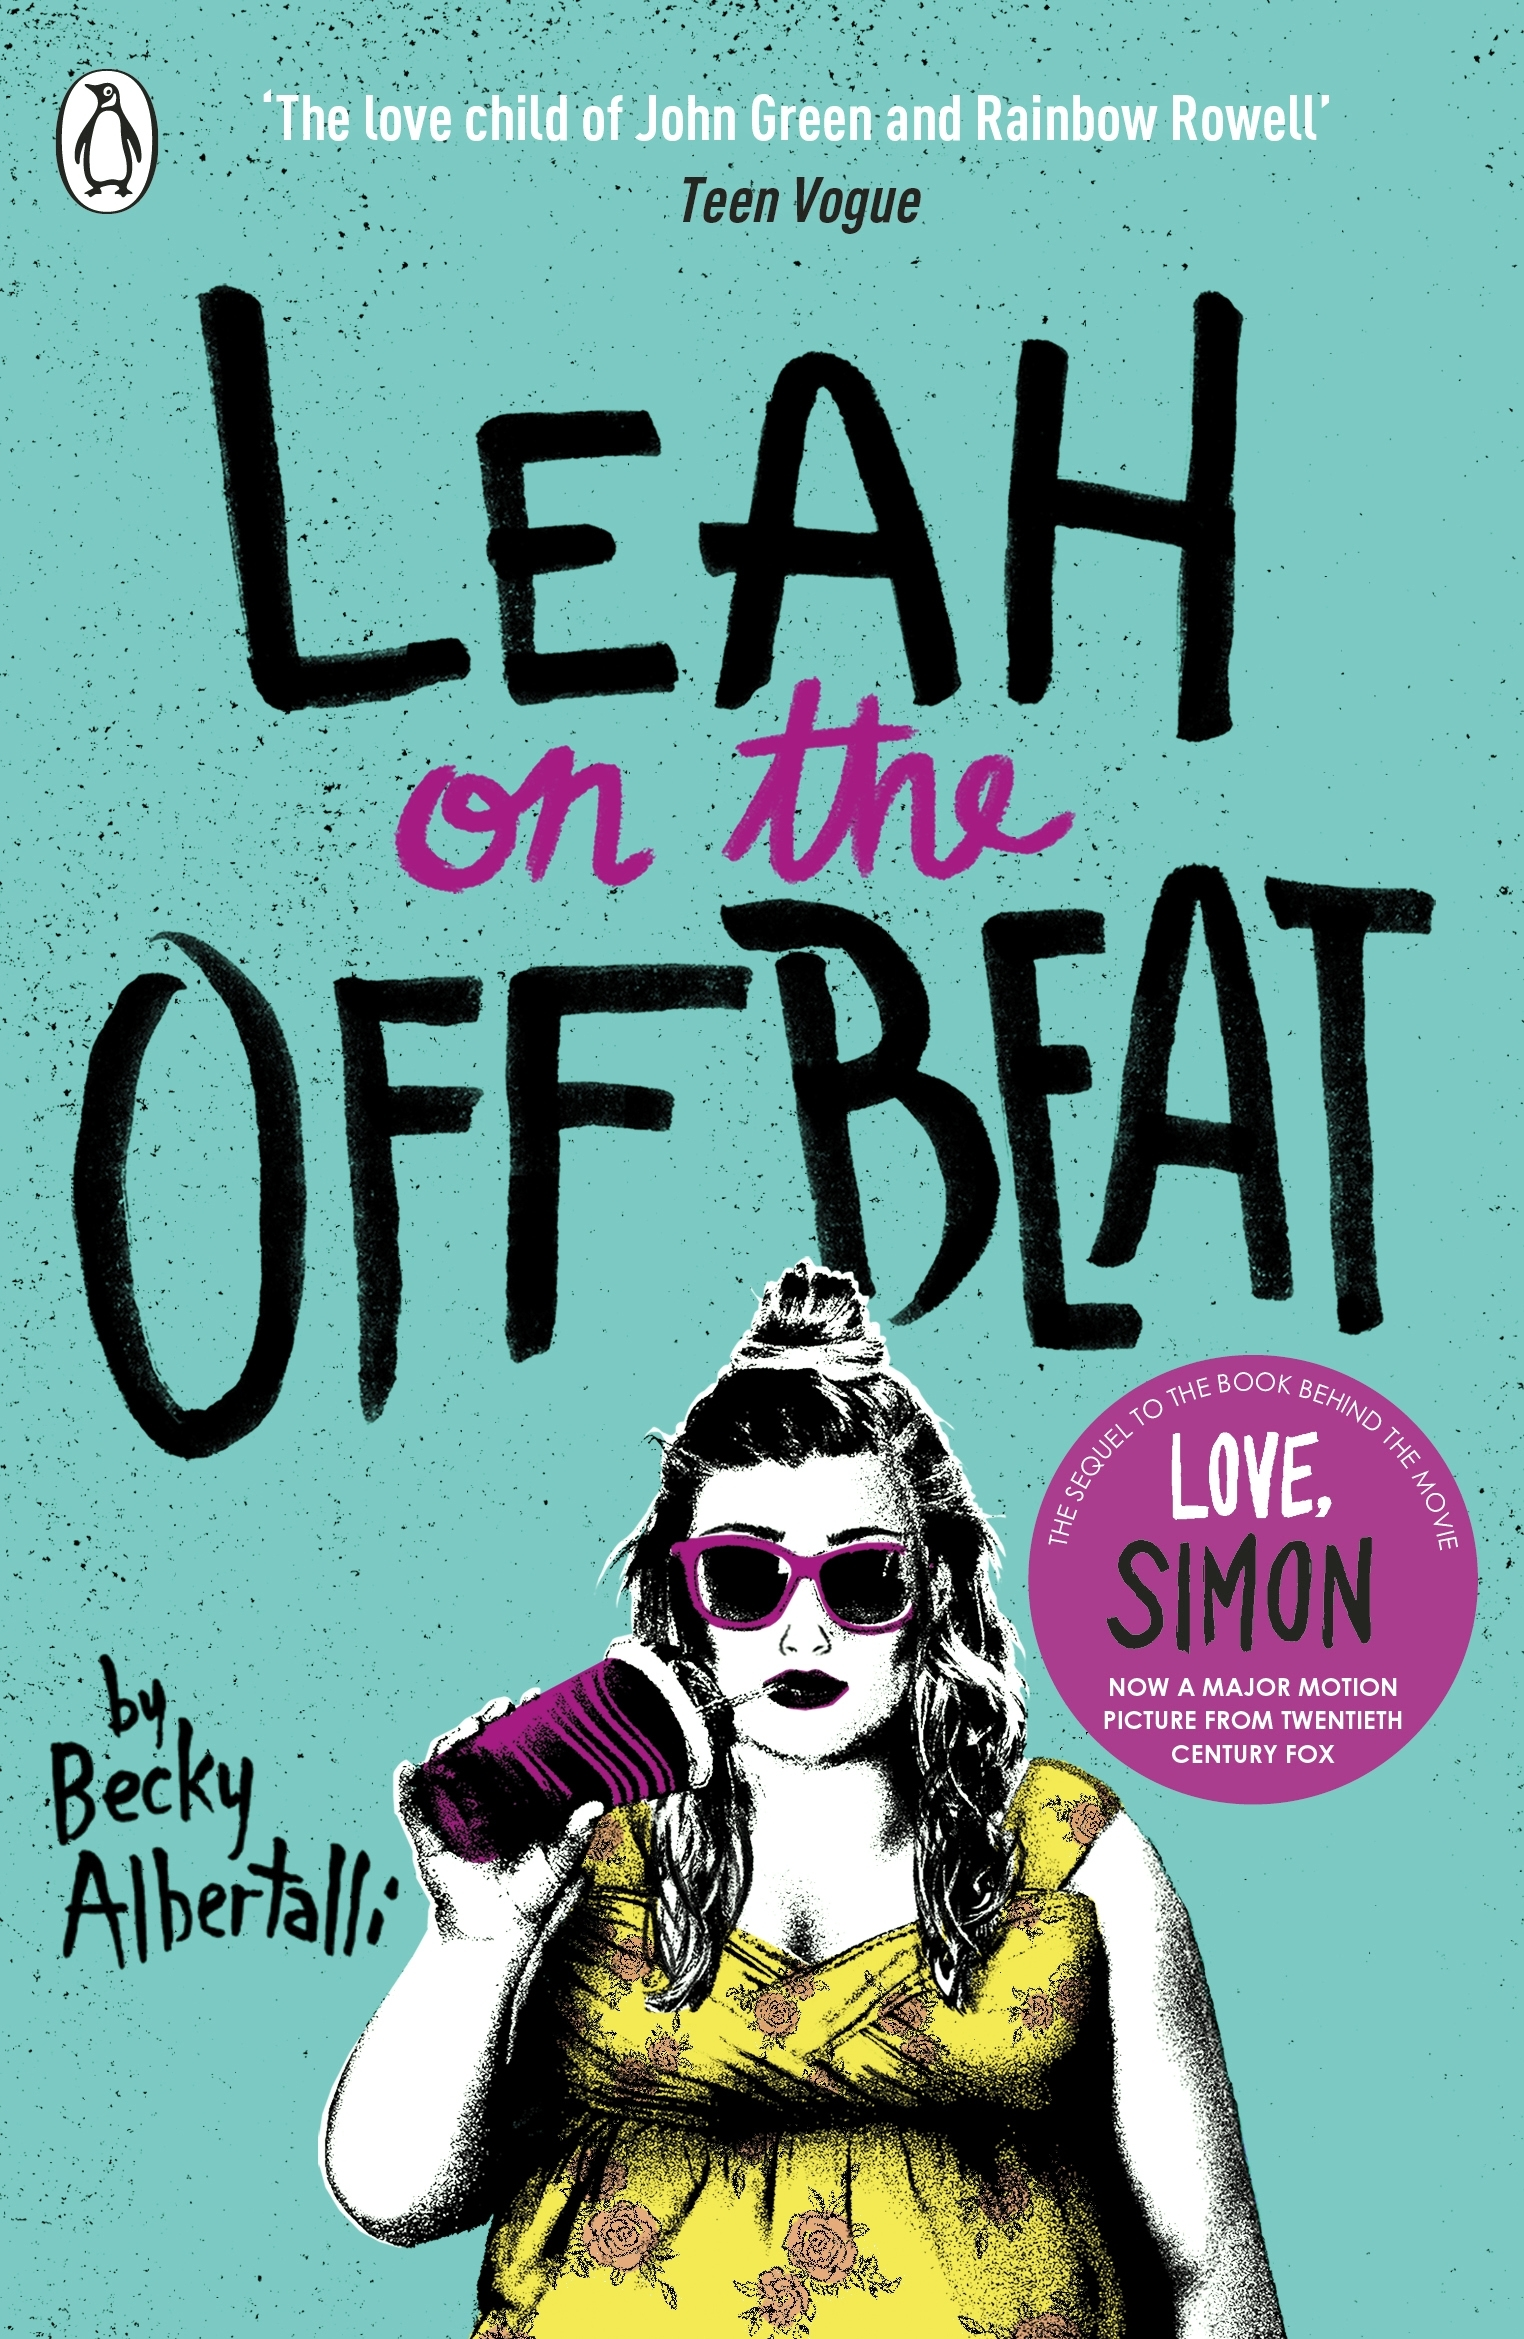 Libro Peppa Pig Leah On The Offbeat By Becky Albertalli - Penguin Books